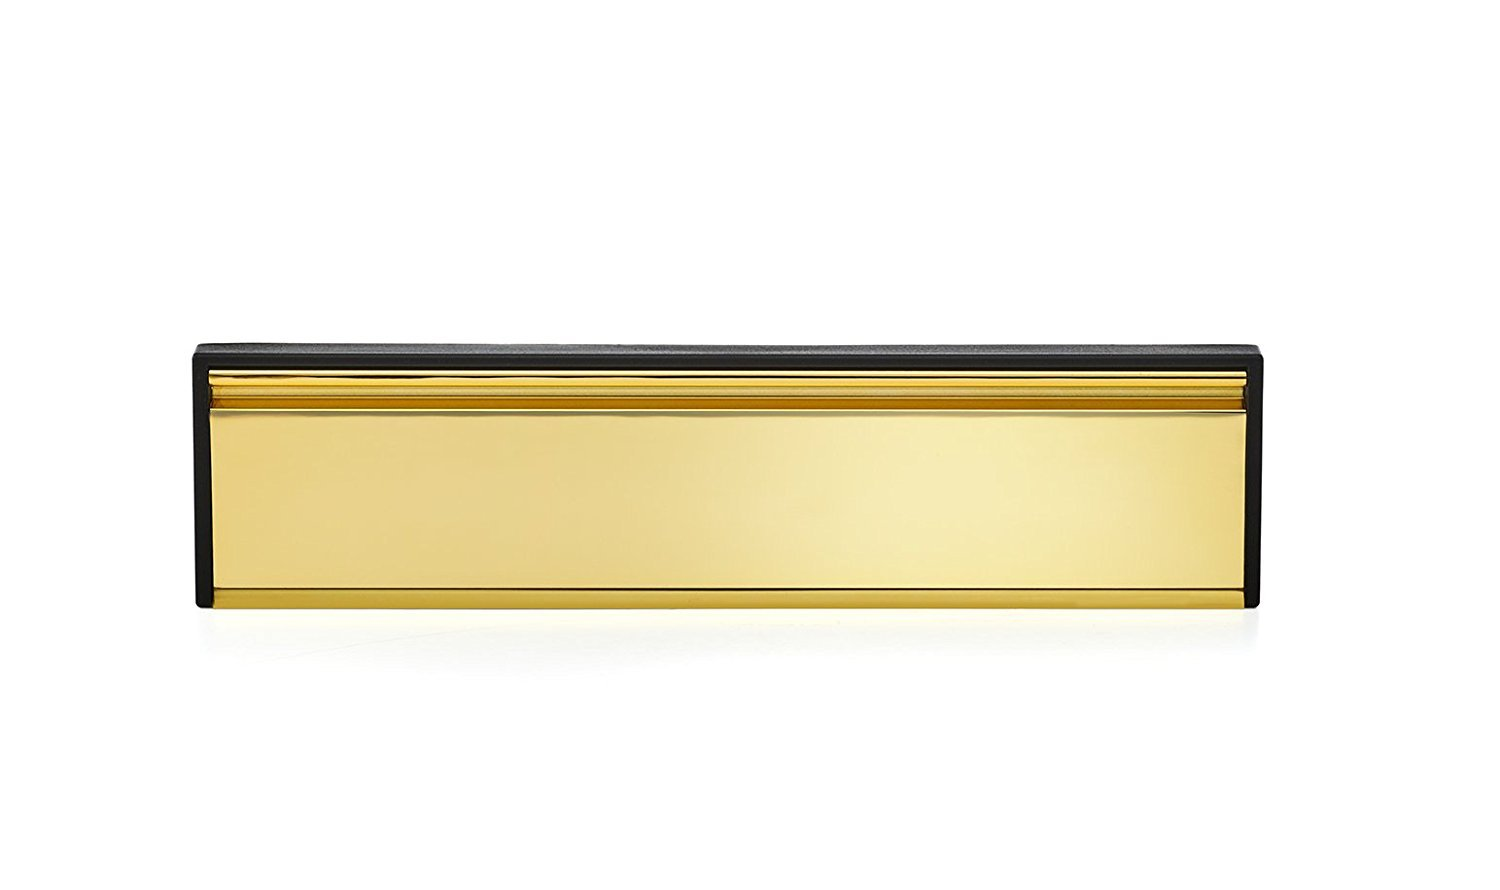 Door Mail Slot by Gaard - Telescopic Sleeve & Gold Sealed Flap - Compatible with Any Door Type